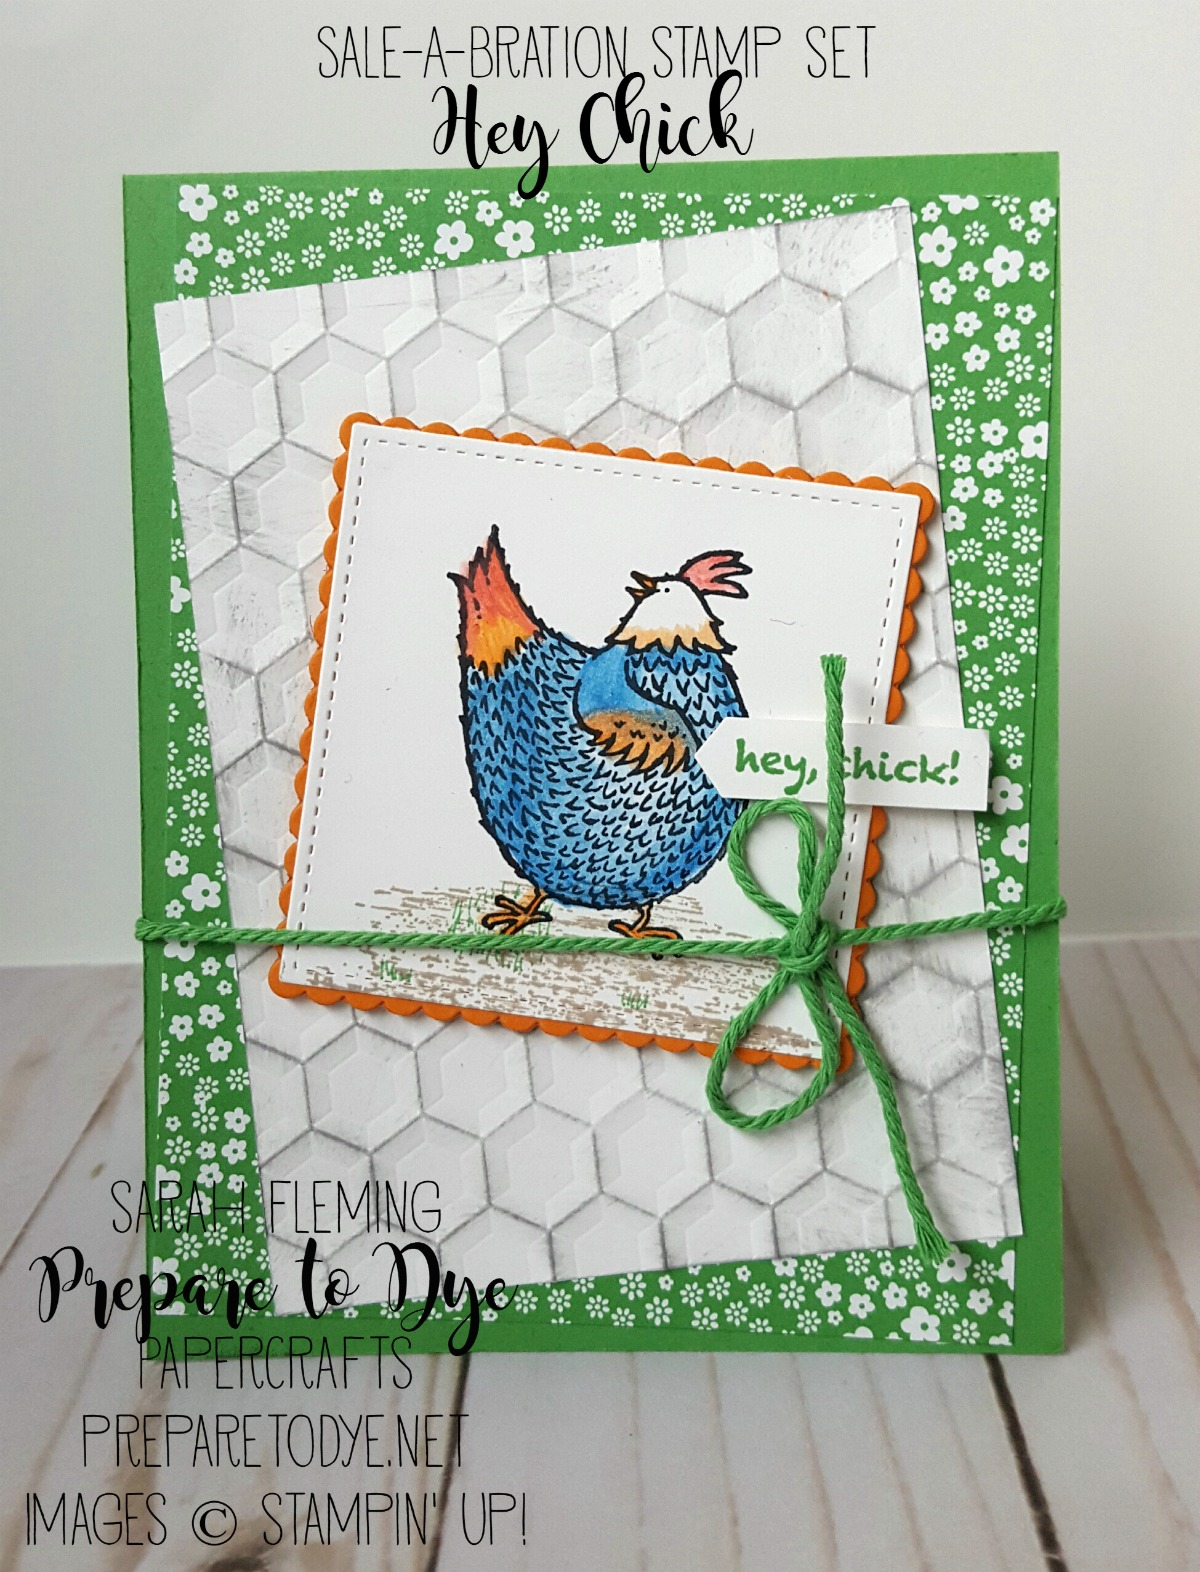 Stampin' Up! Hey Chick stamp set -- free Sale-A-Bration stamp set -- offer ends March 31 -- handmade birthday card -- Sarah Fleming -- Prepare to Dye Papercrafts